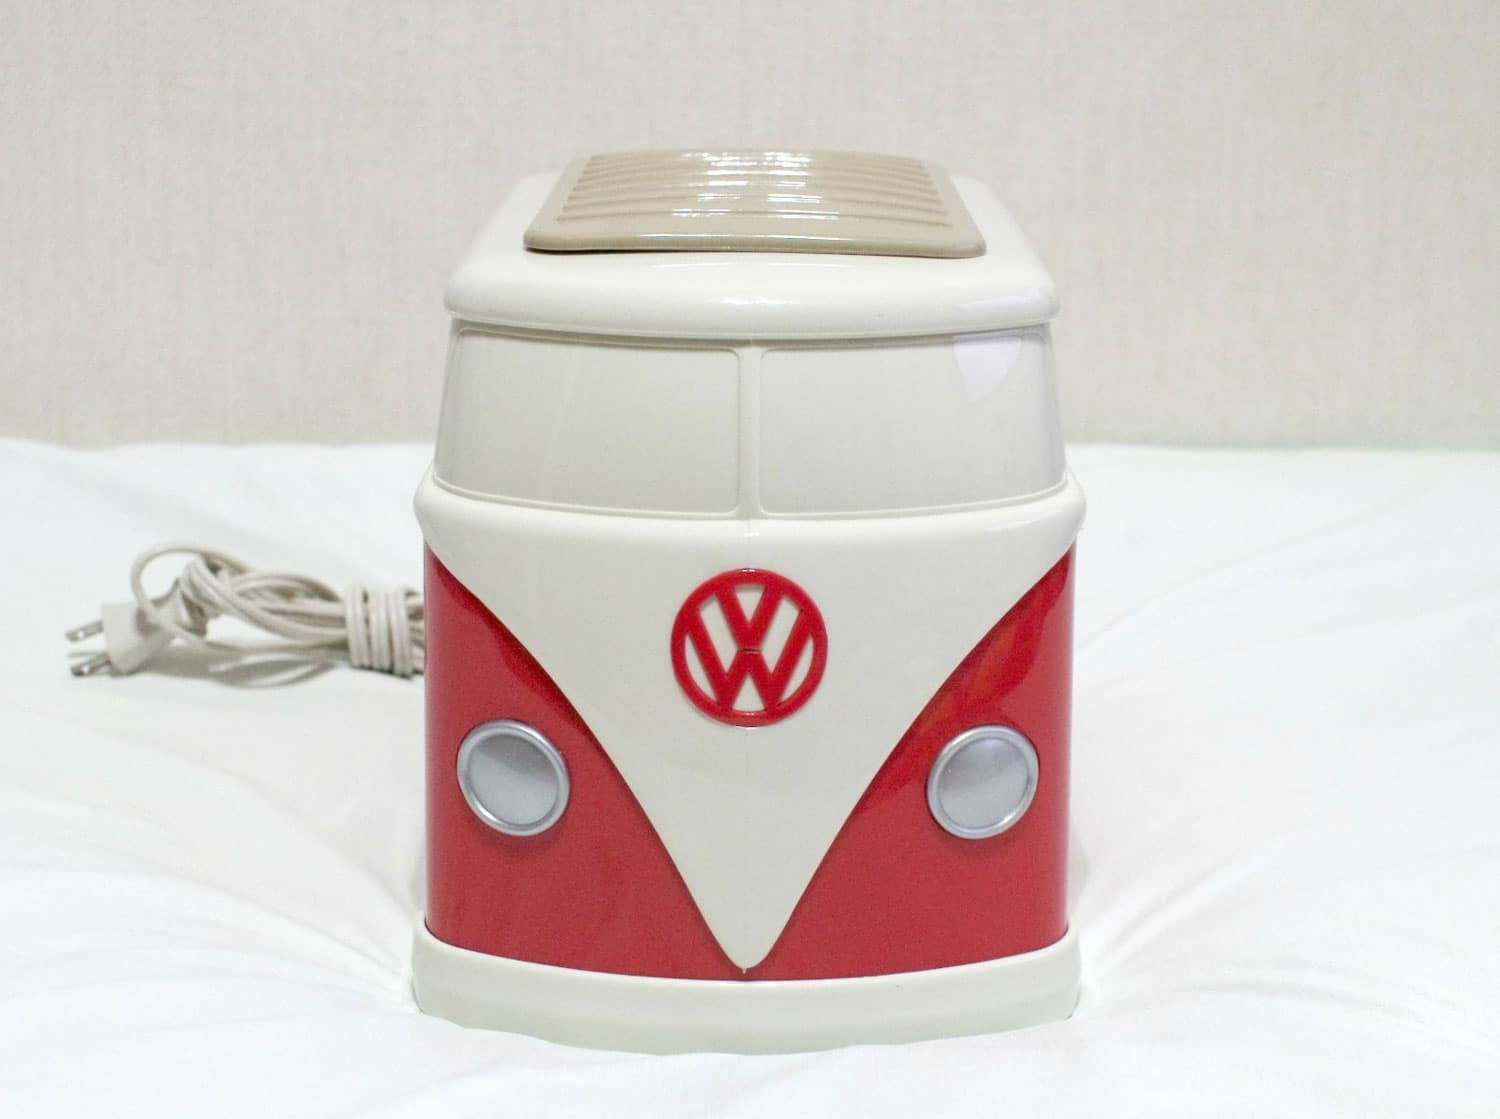 volkswagen-bus-toaster-and-toast